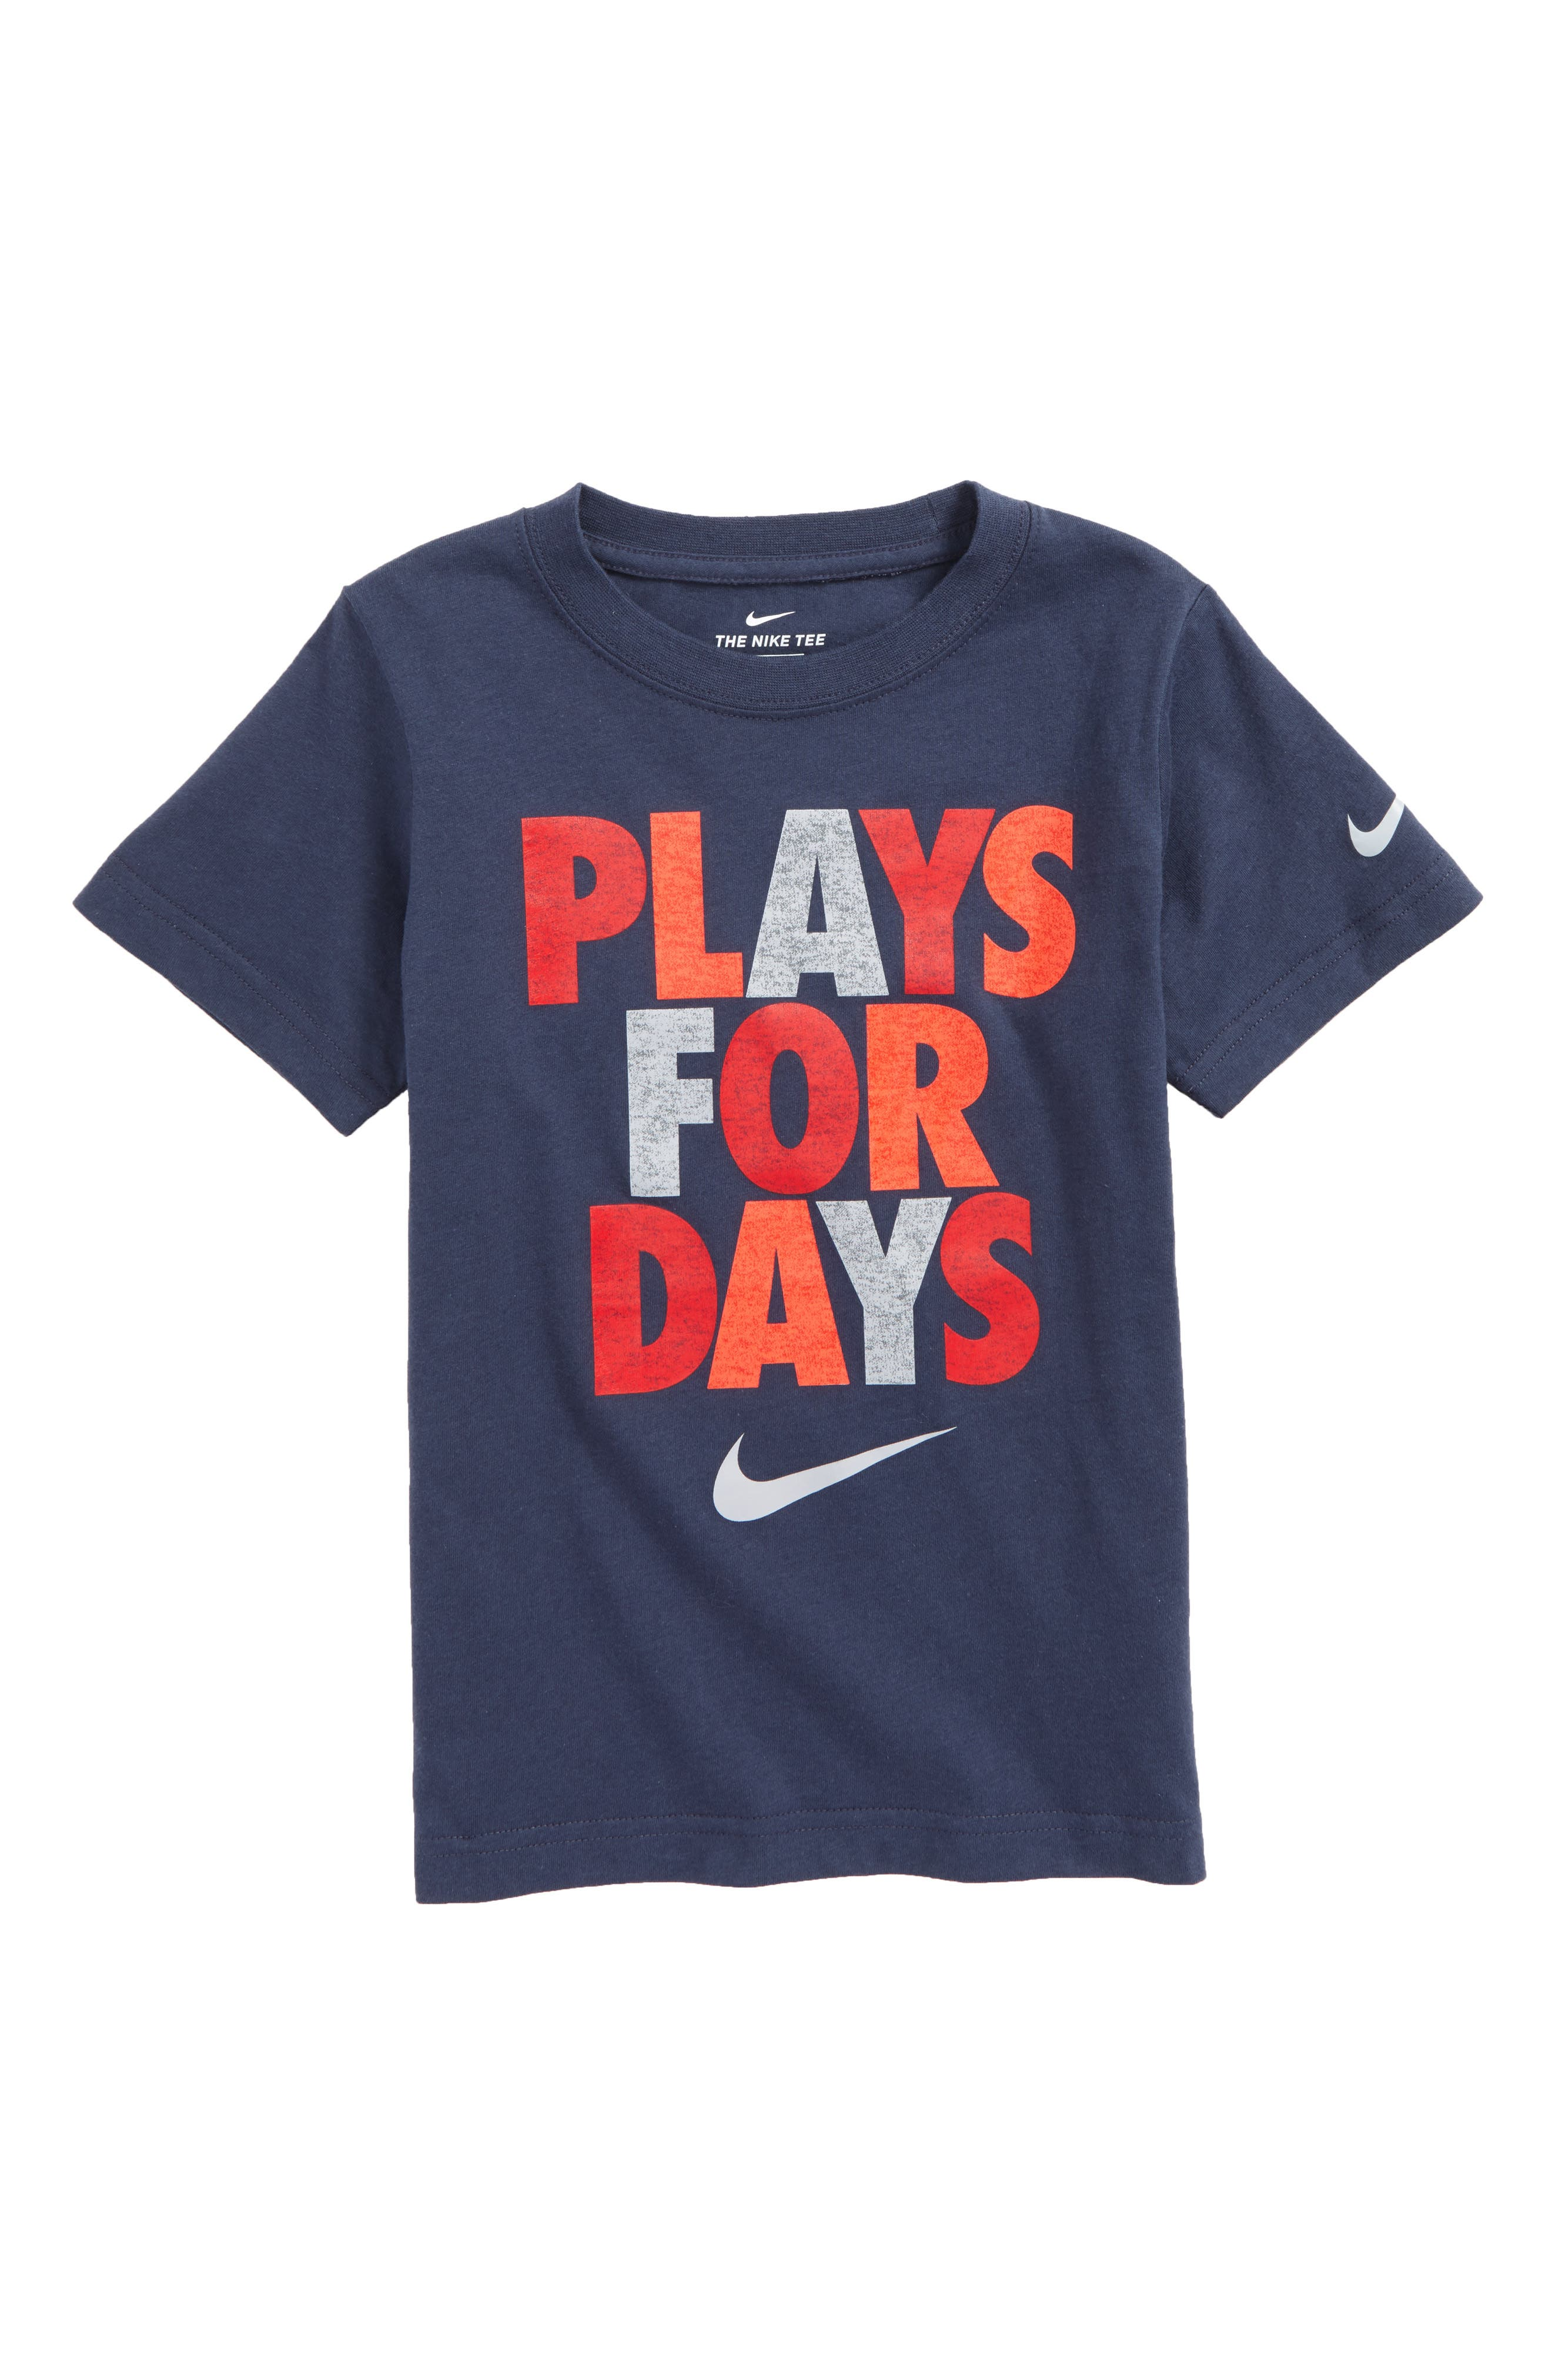 Nike Plays for Days Graphic T-Shirt (Toddler Boys & Little Boys)